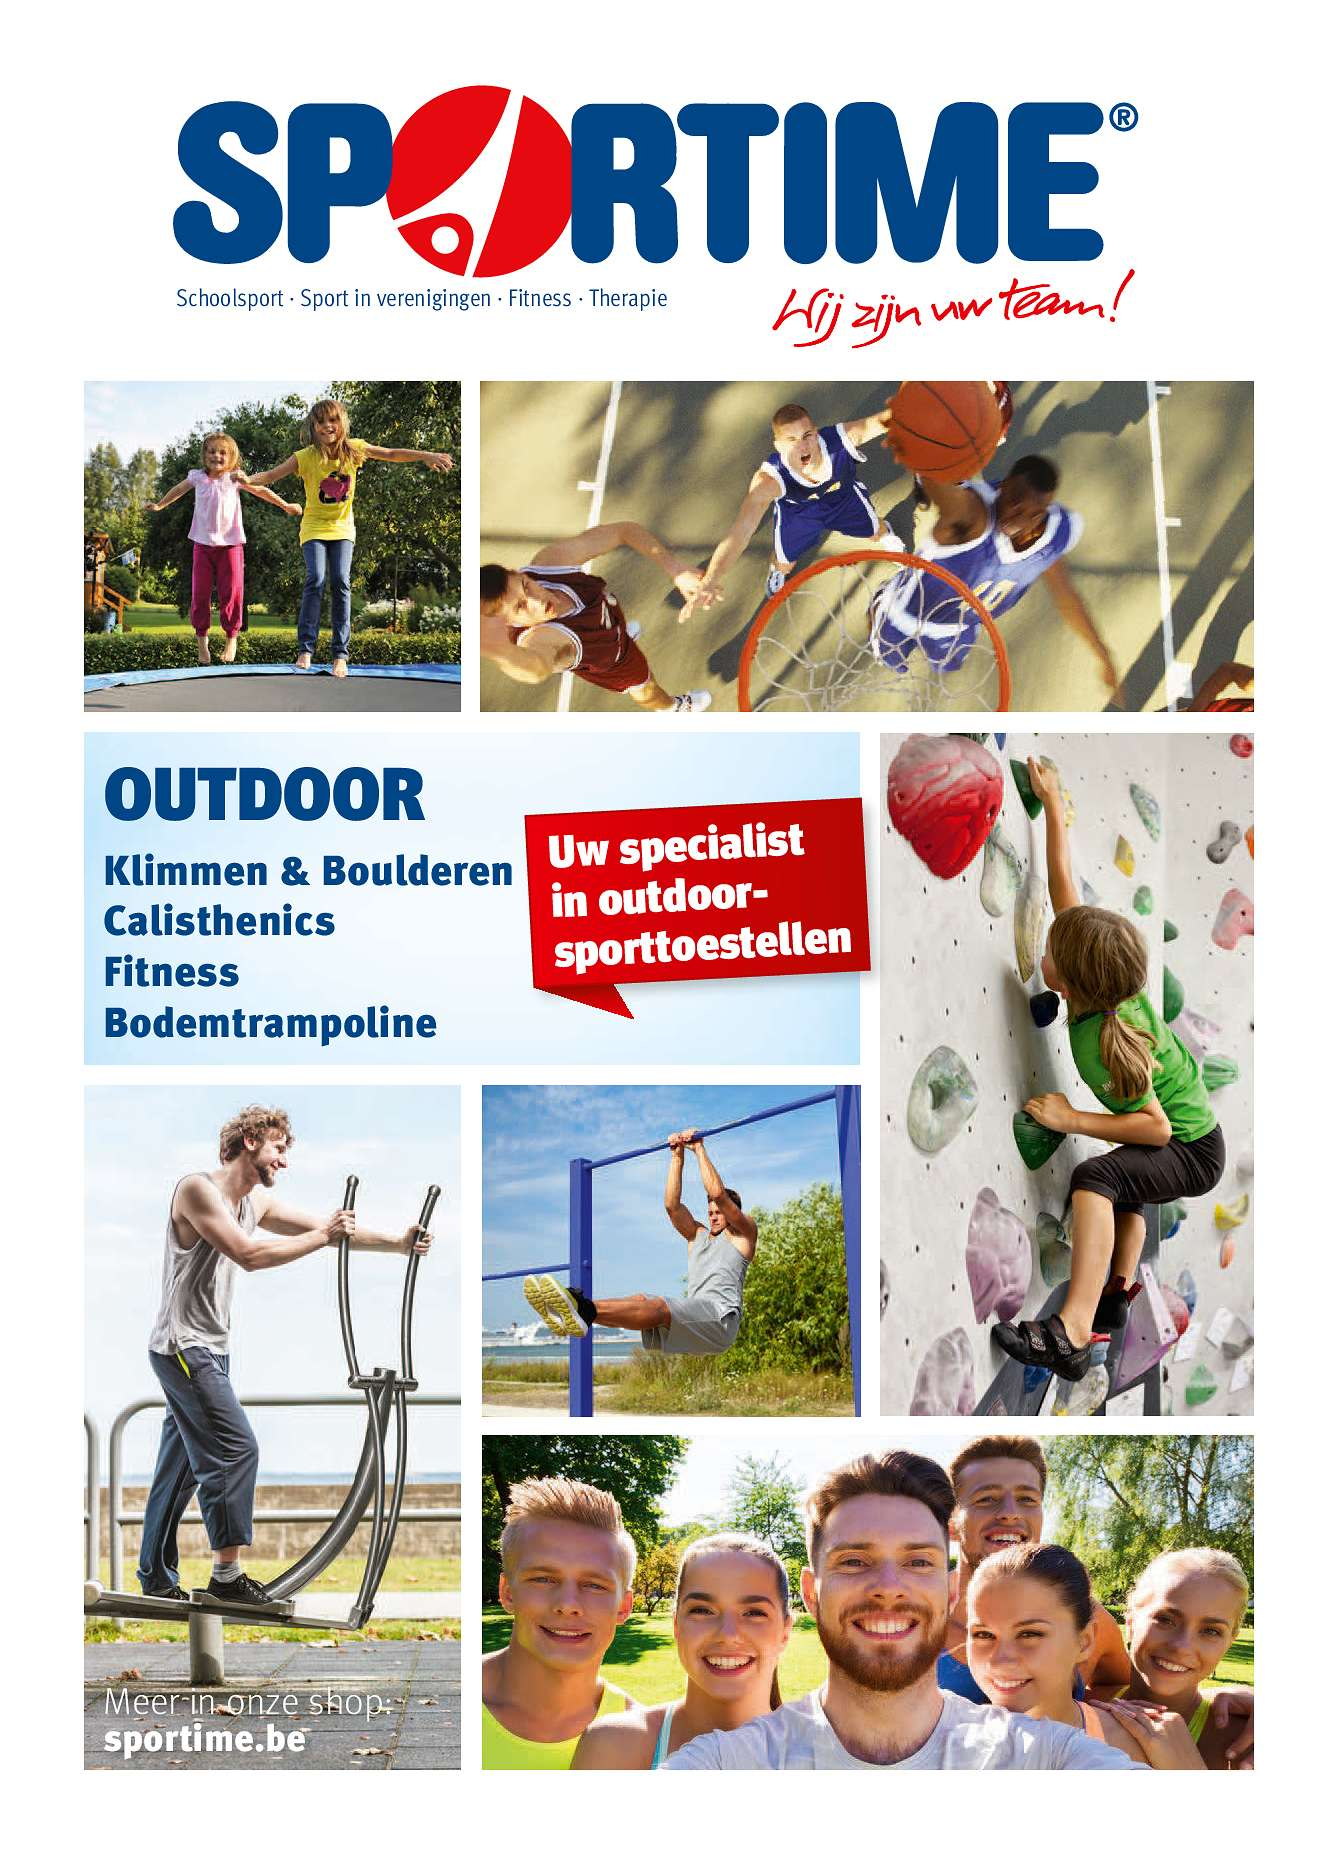 Sport-Thieme Outdoorflyer